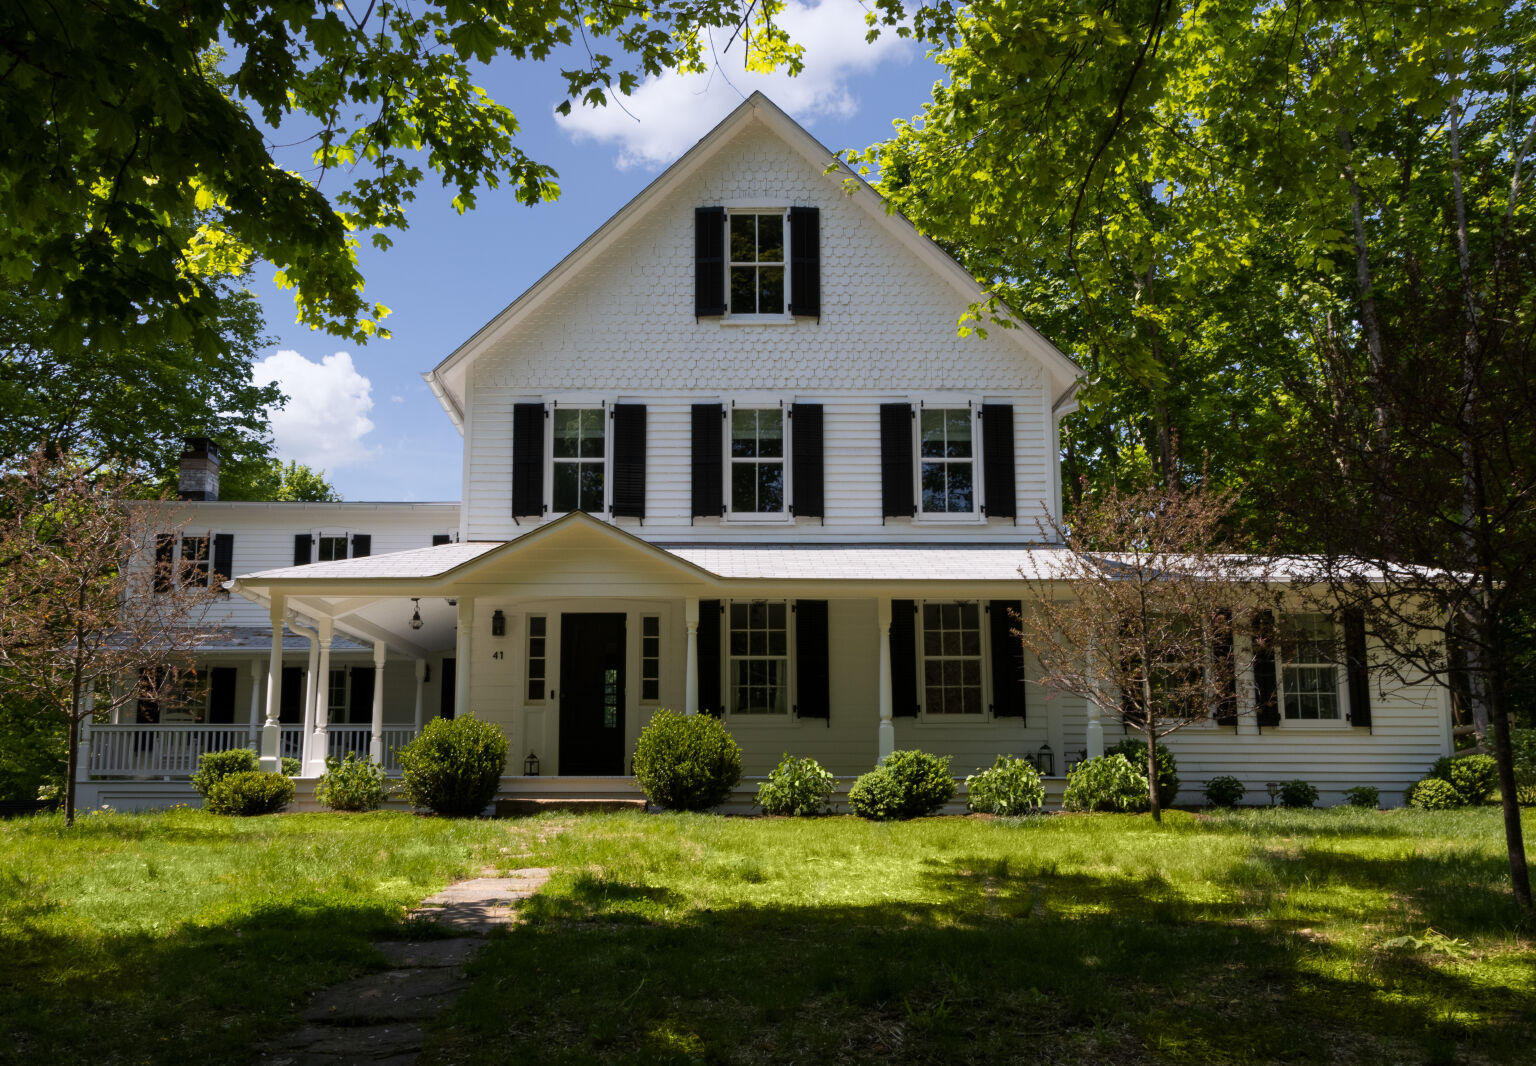 New English: A Falling-Down 1850s Farmhouse in Westchester, Transformed by a Pair of Designers